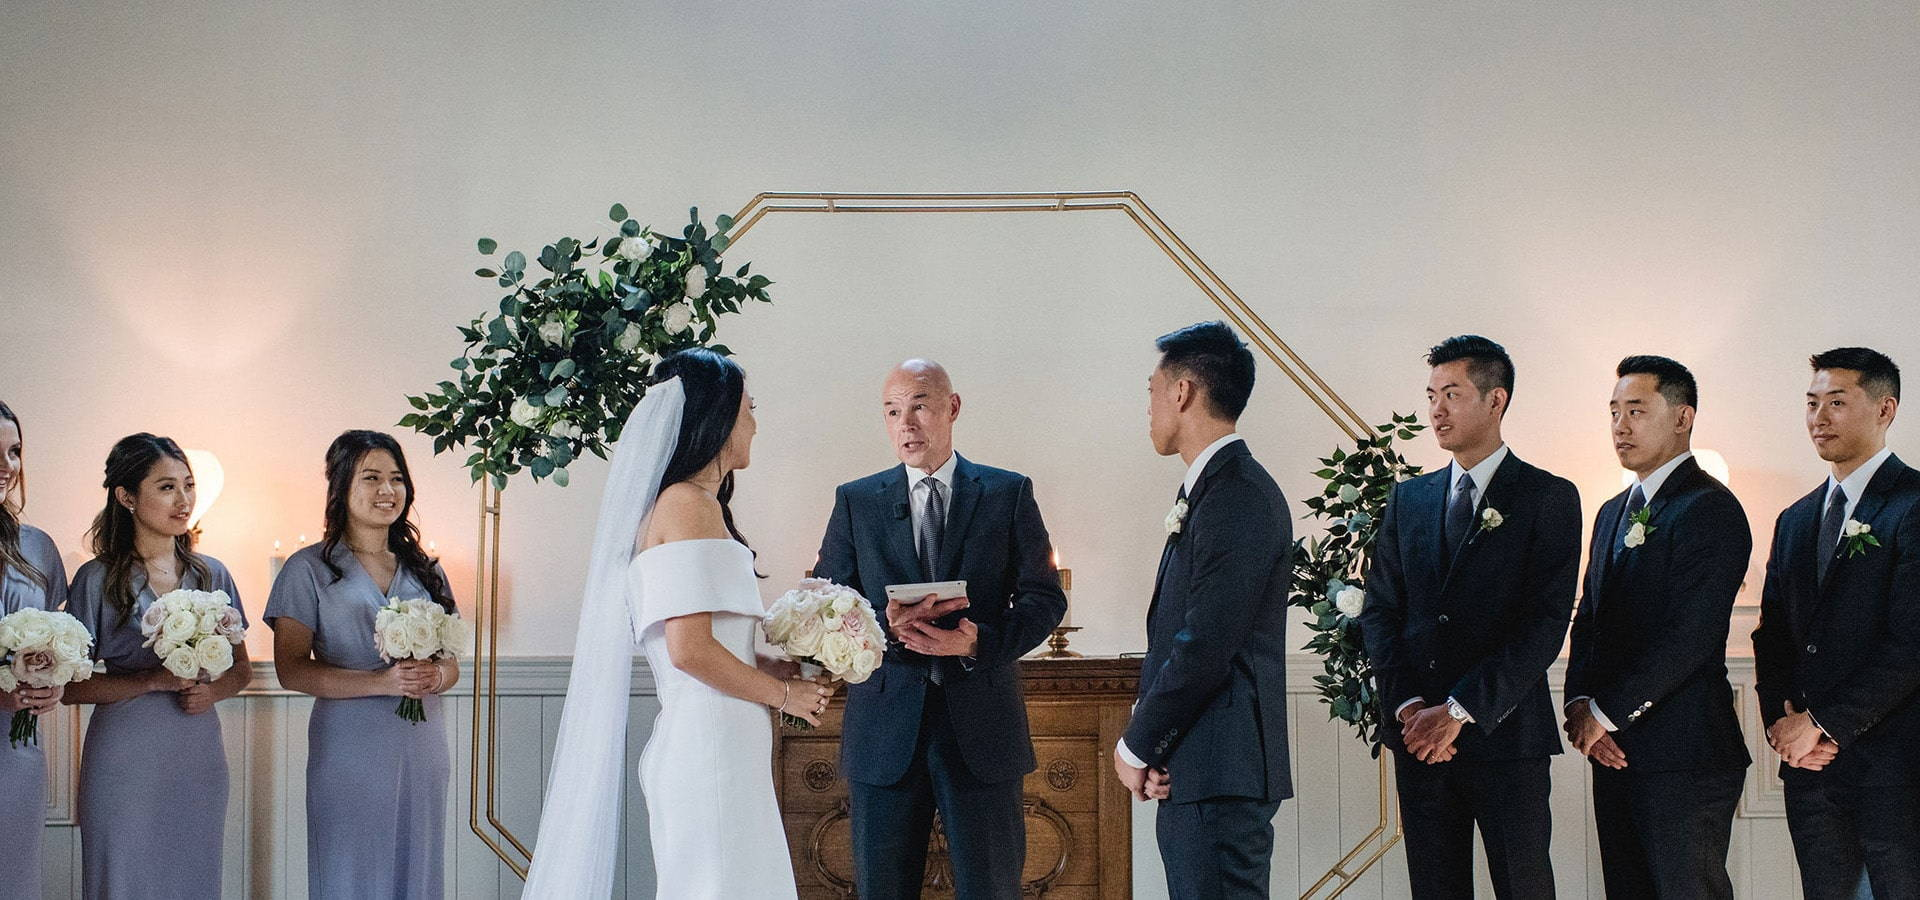 Hero image for 7 Questions That Will Help You Find The Perfect Officiant